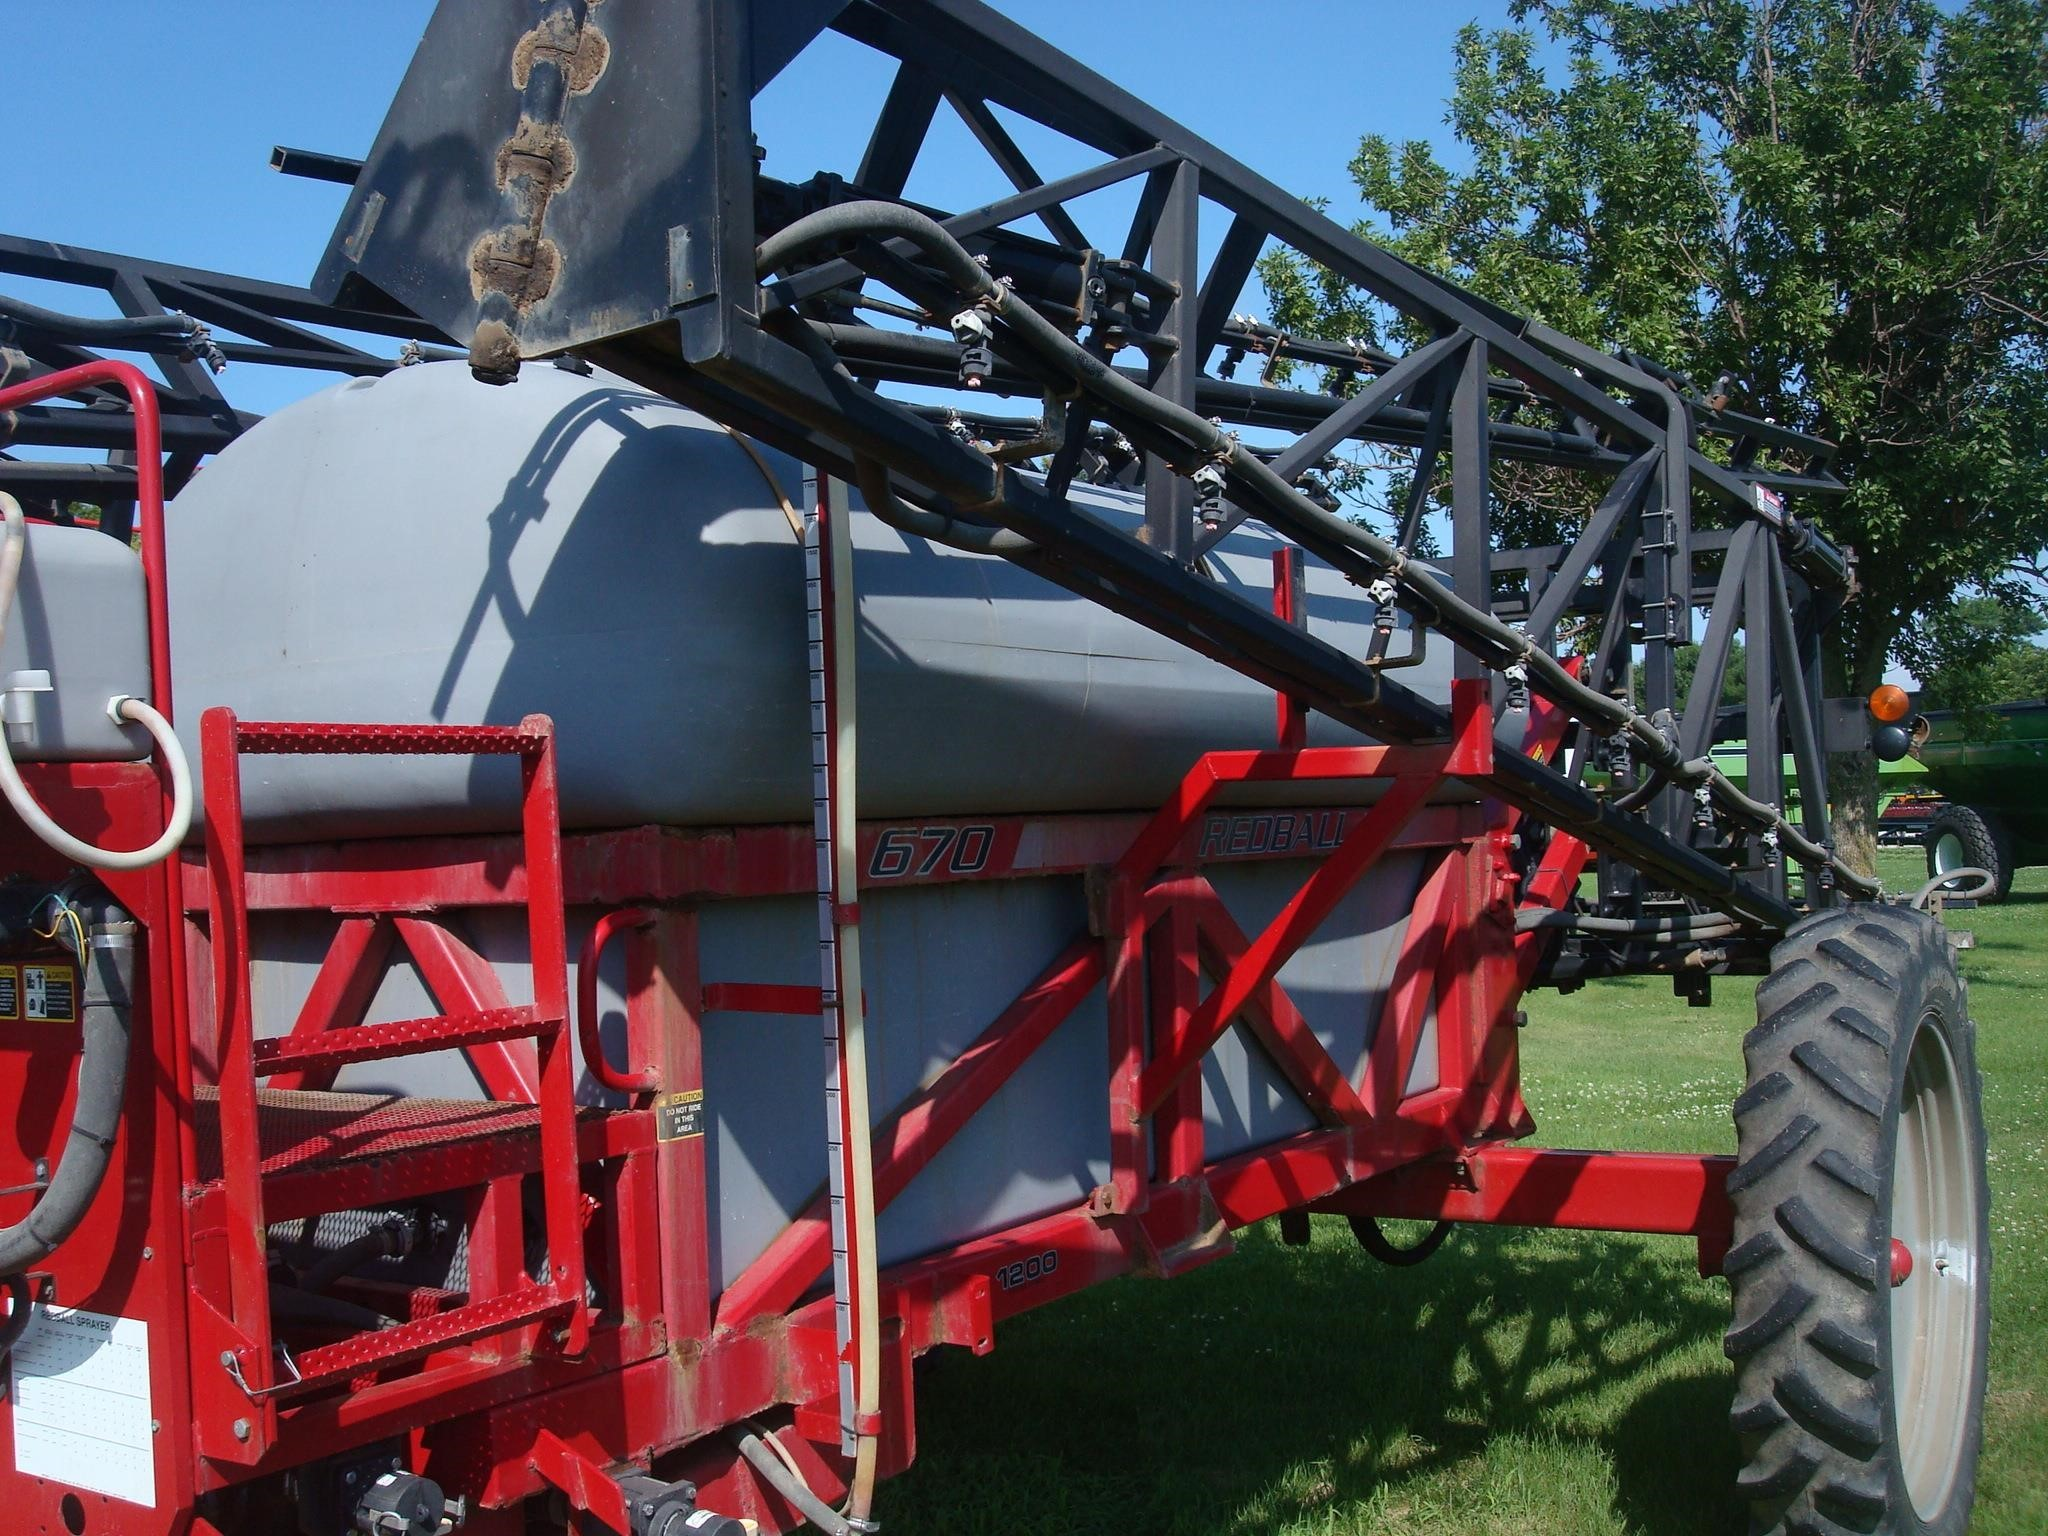 2002 Redball 670 Pull-Type Sprayer